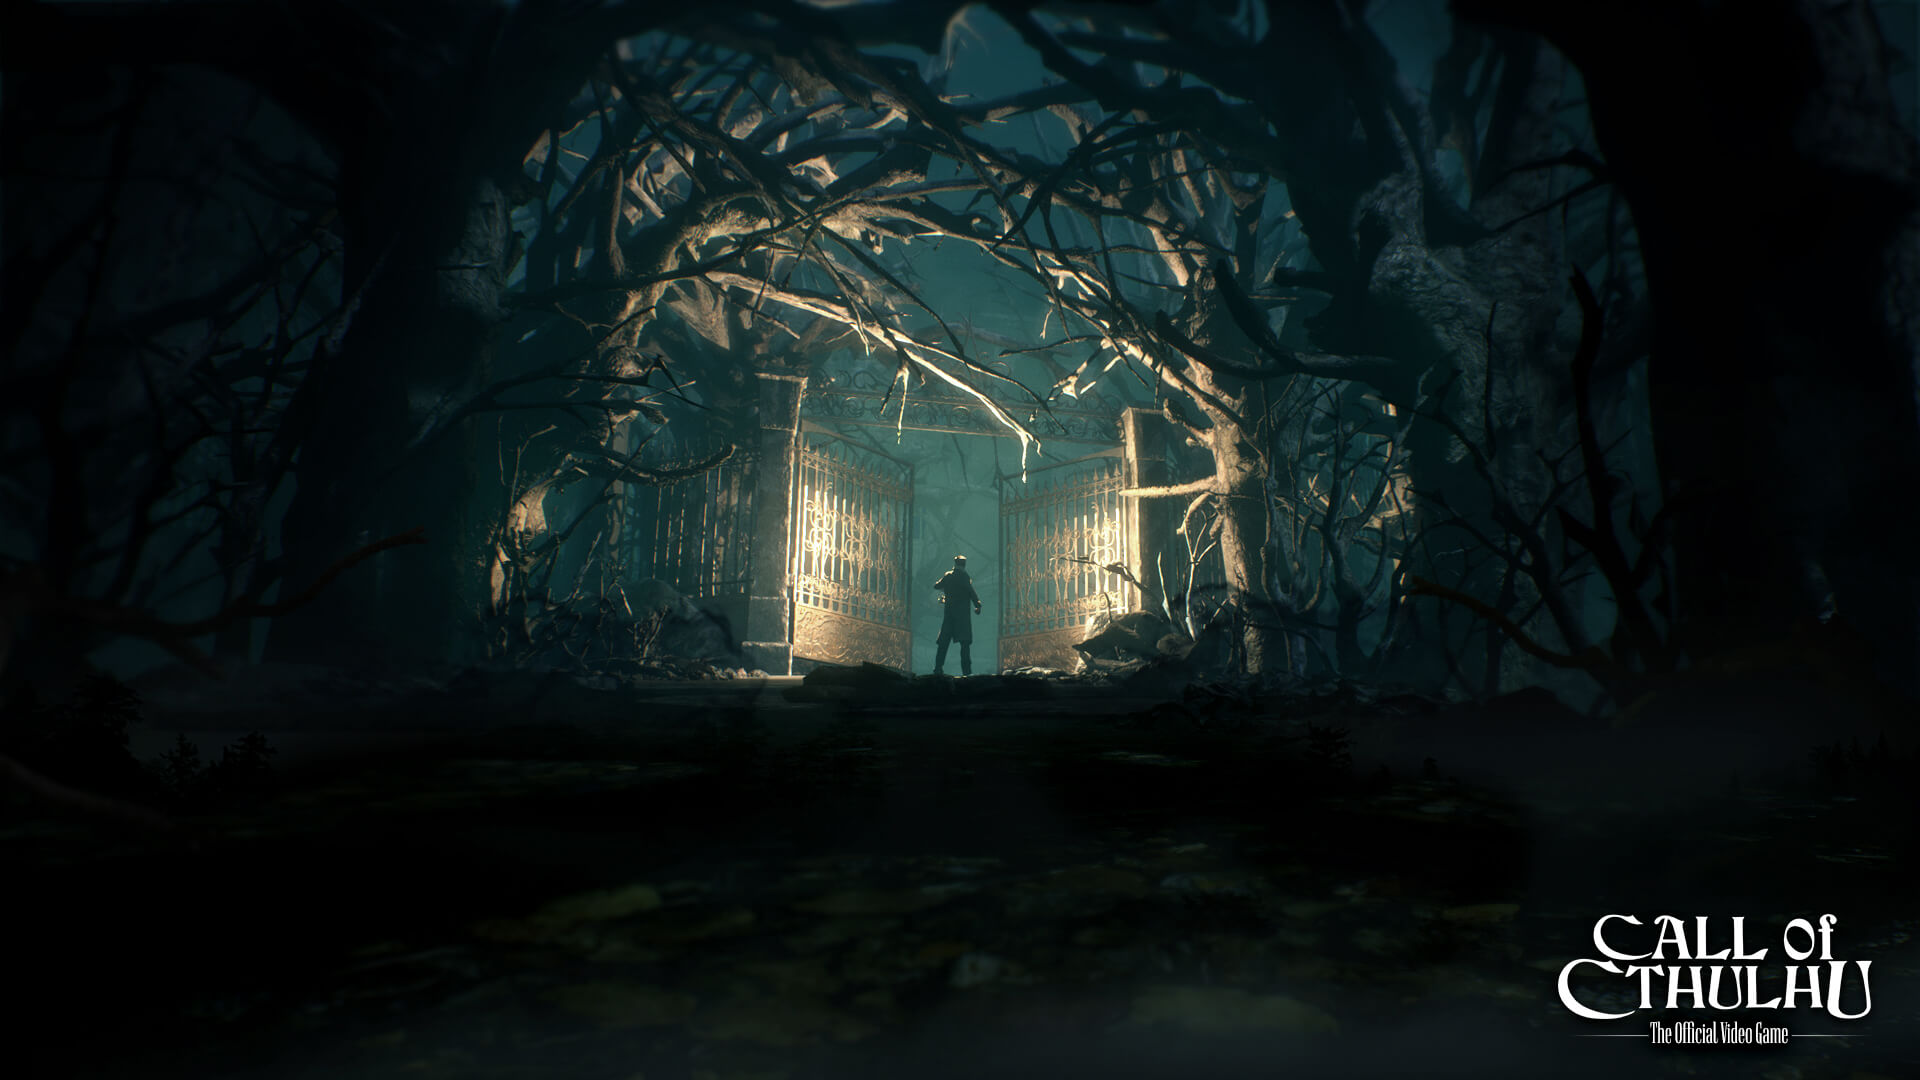 Call of Cthulhu download free